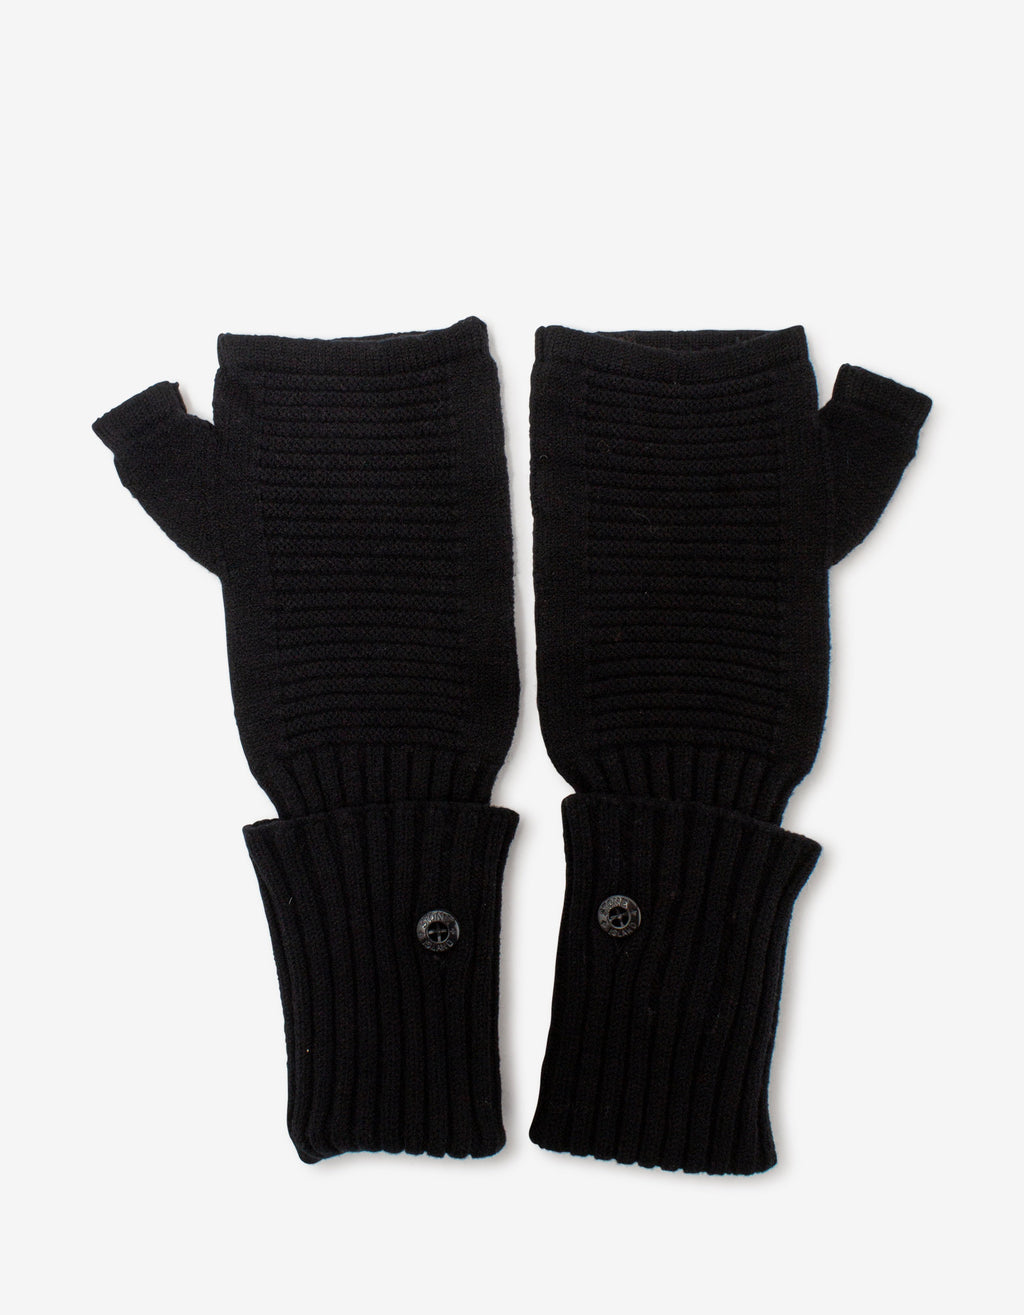 Black Wool Fingerless Gloves